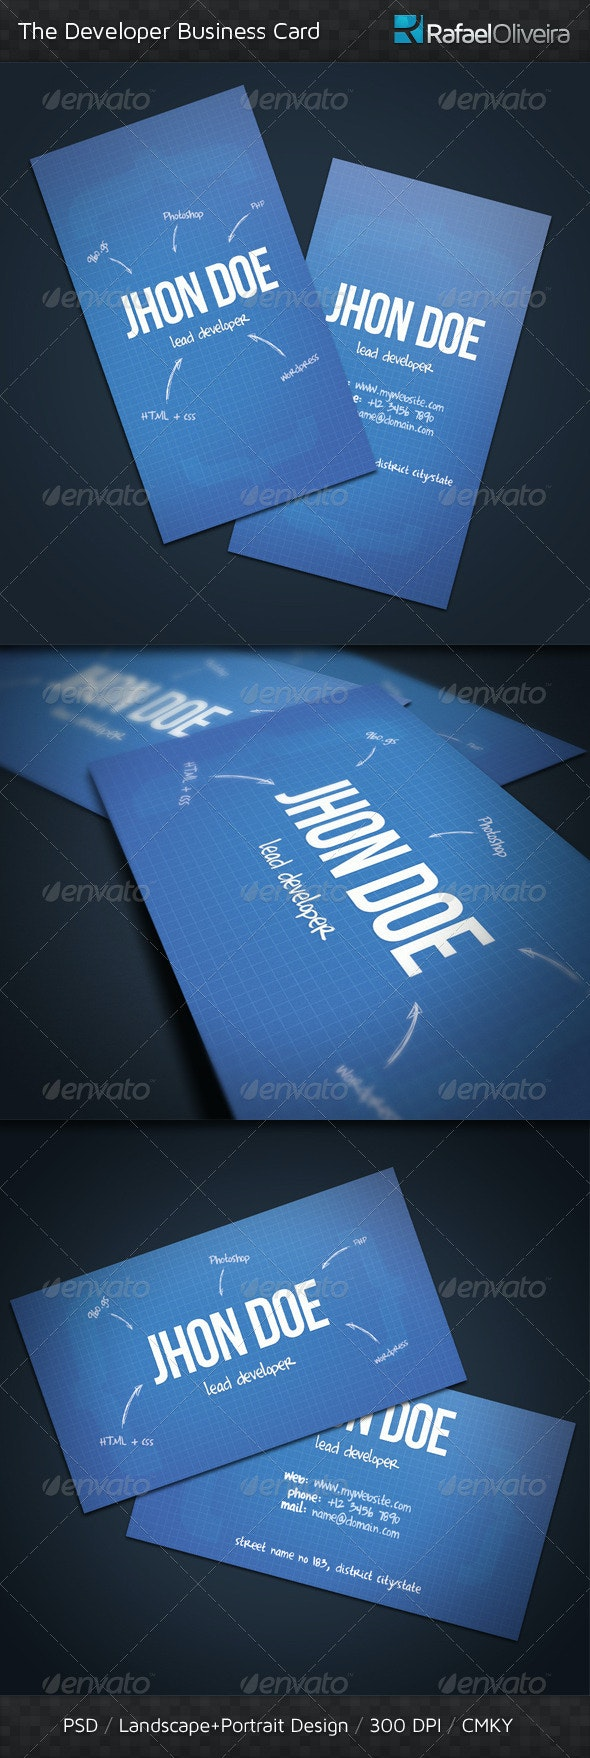 The Developer Business Card - Creative Business Cards